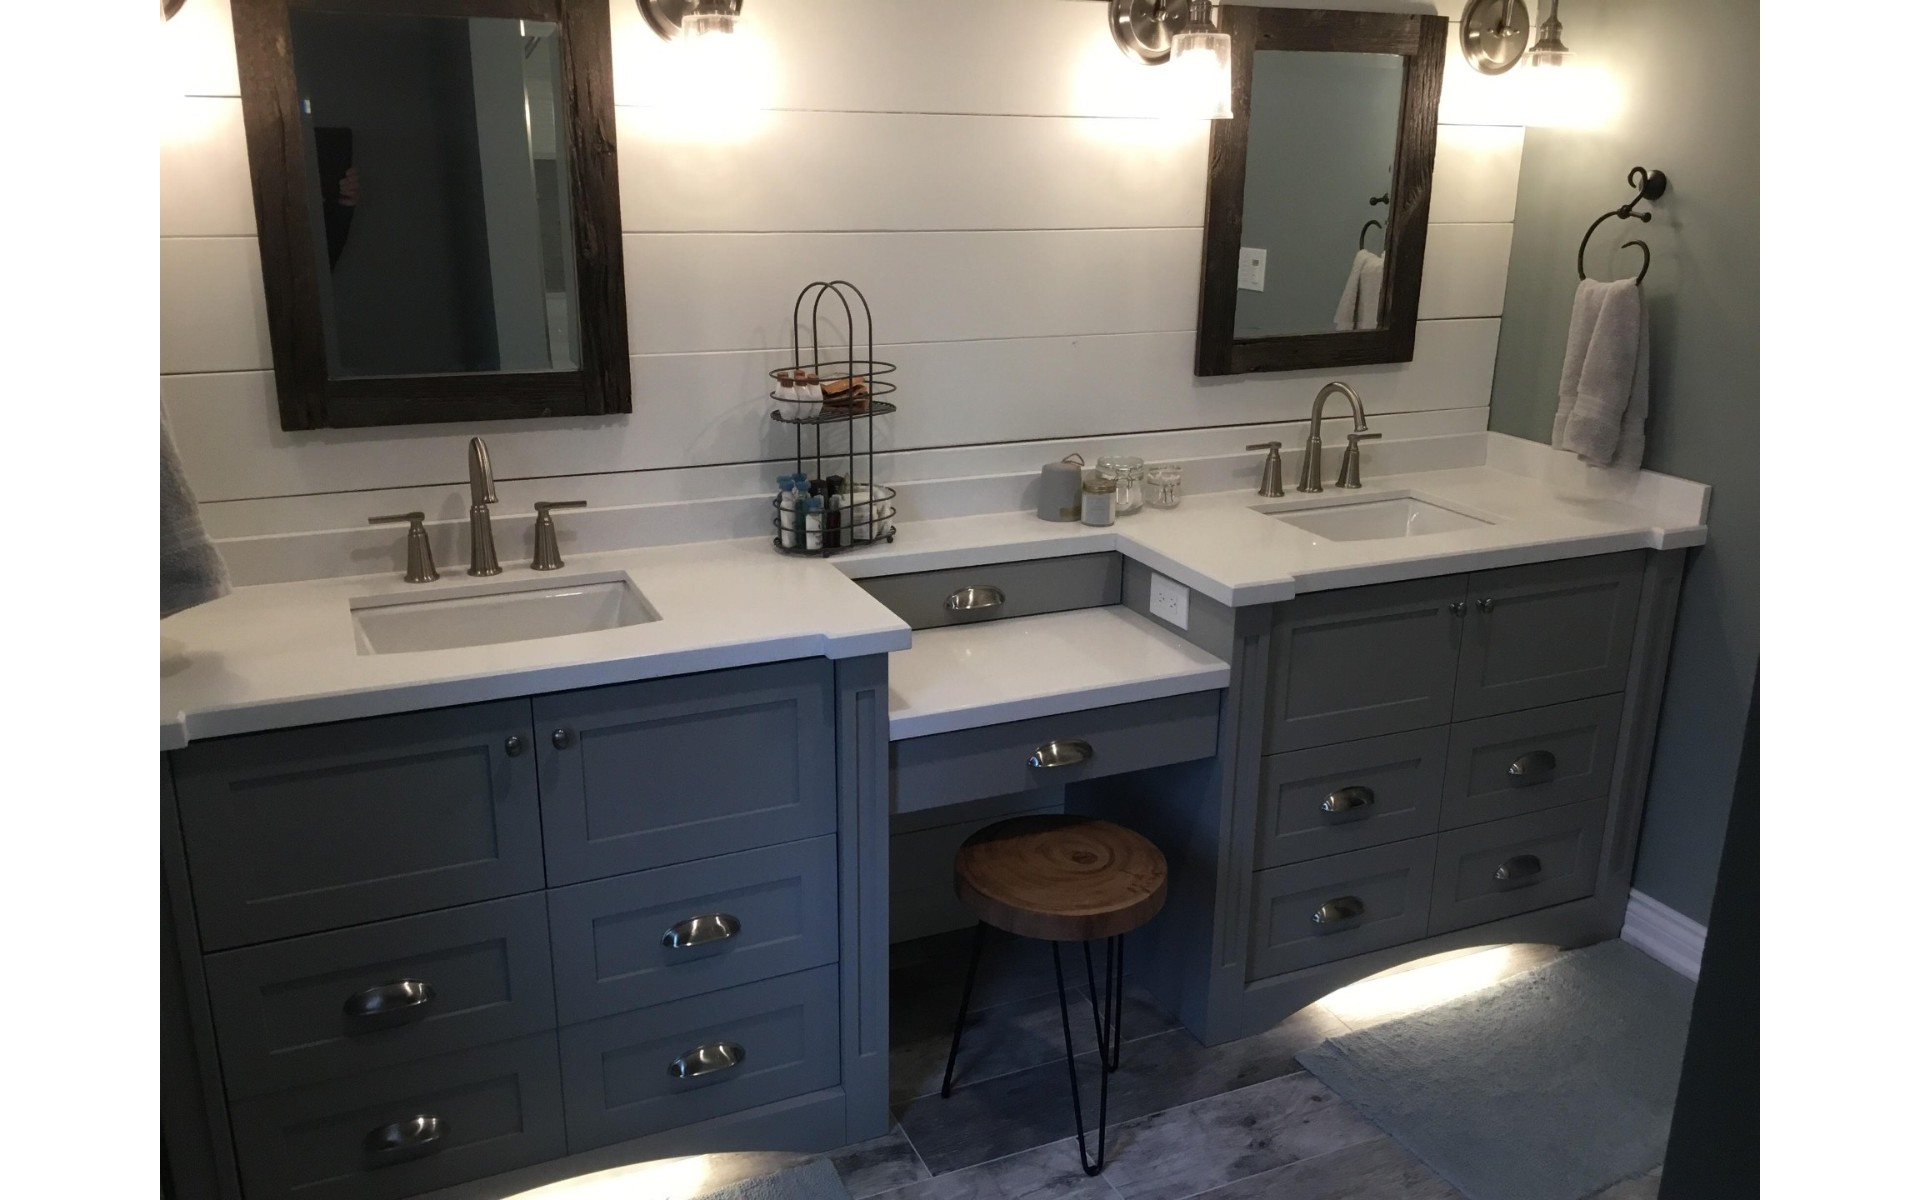 Powder room with double vanity, blue cabinets and white counters